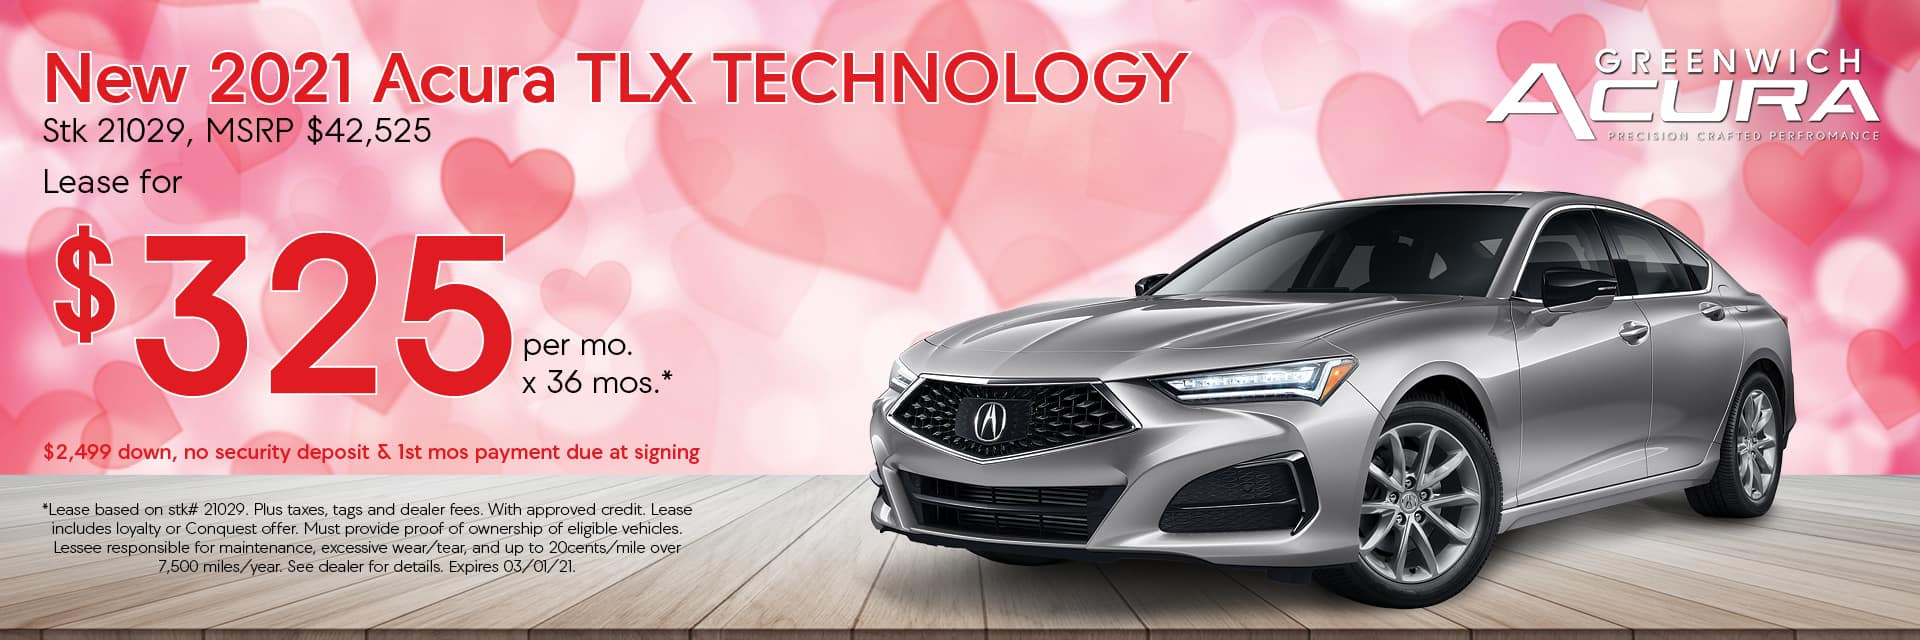 2020 Acura TLX, Lease for $229/Mo. x 36 Mos. | Greenwich, CT